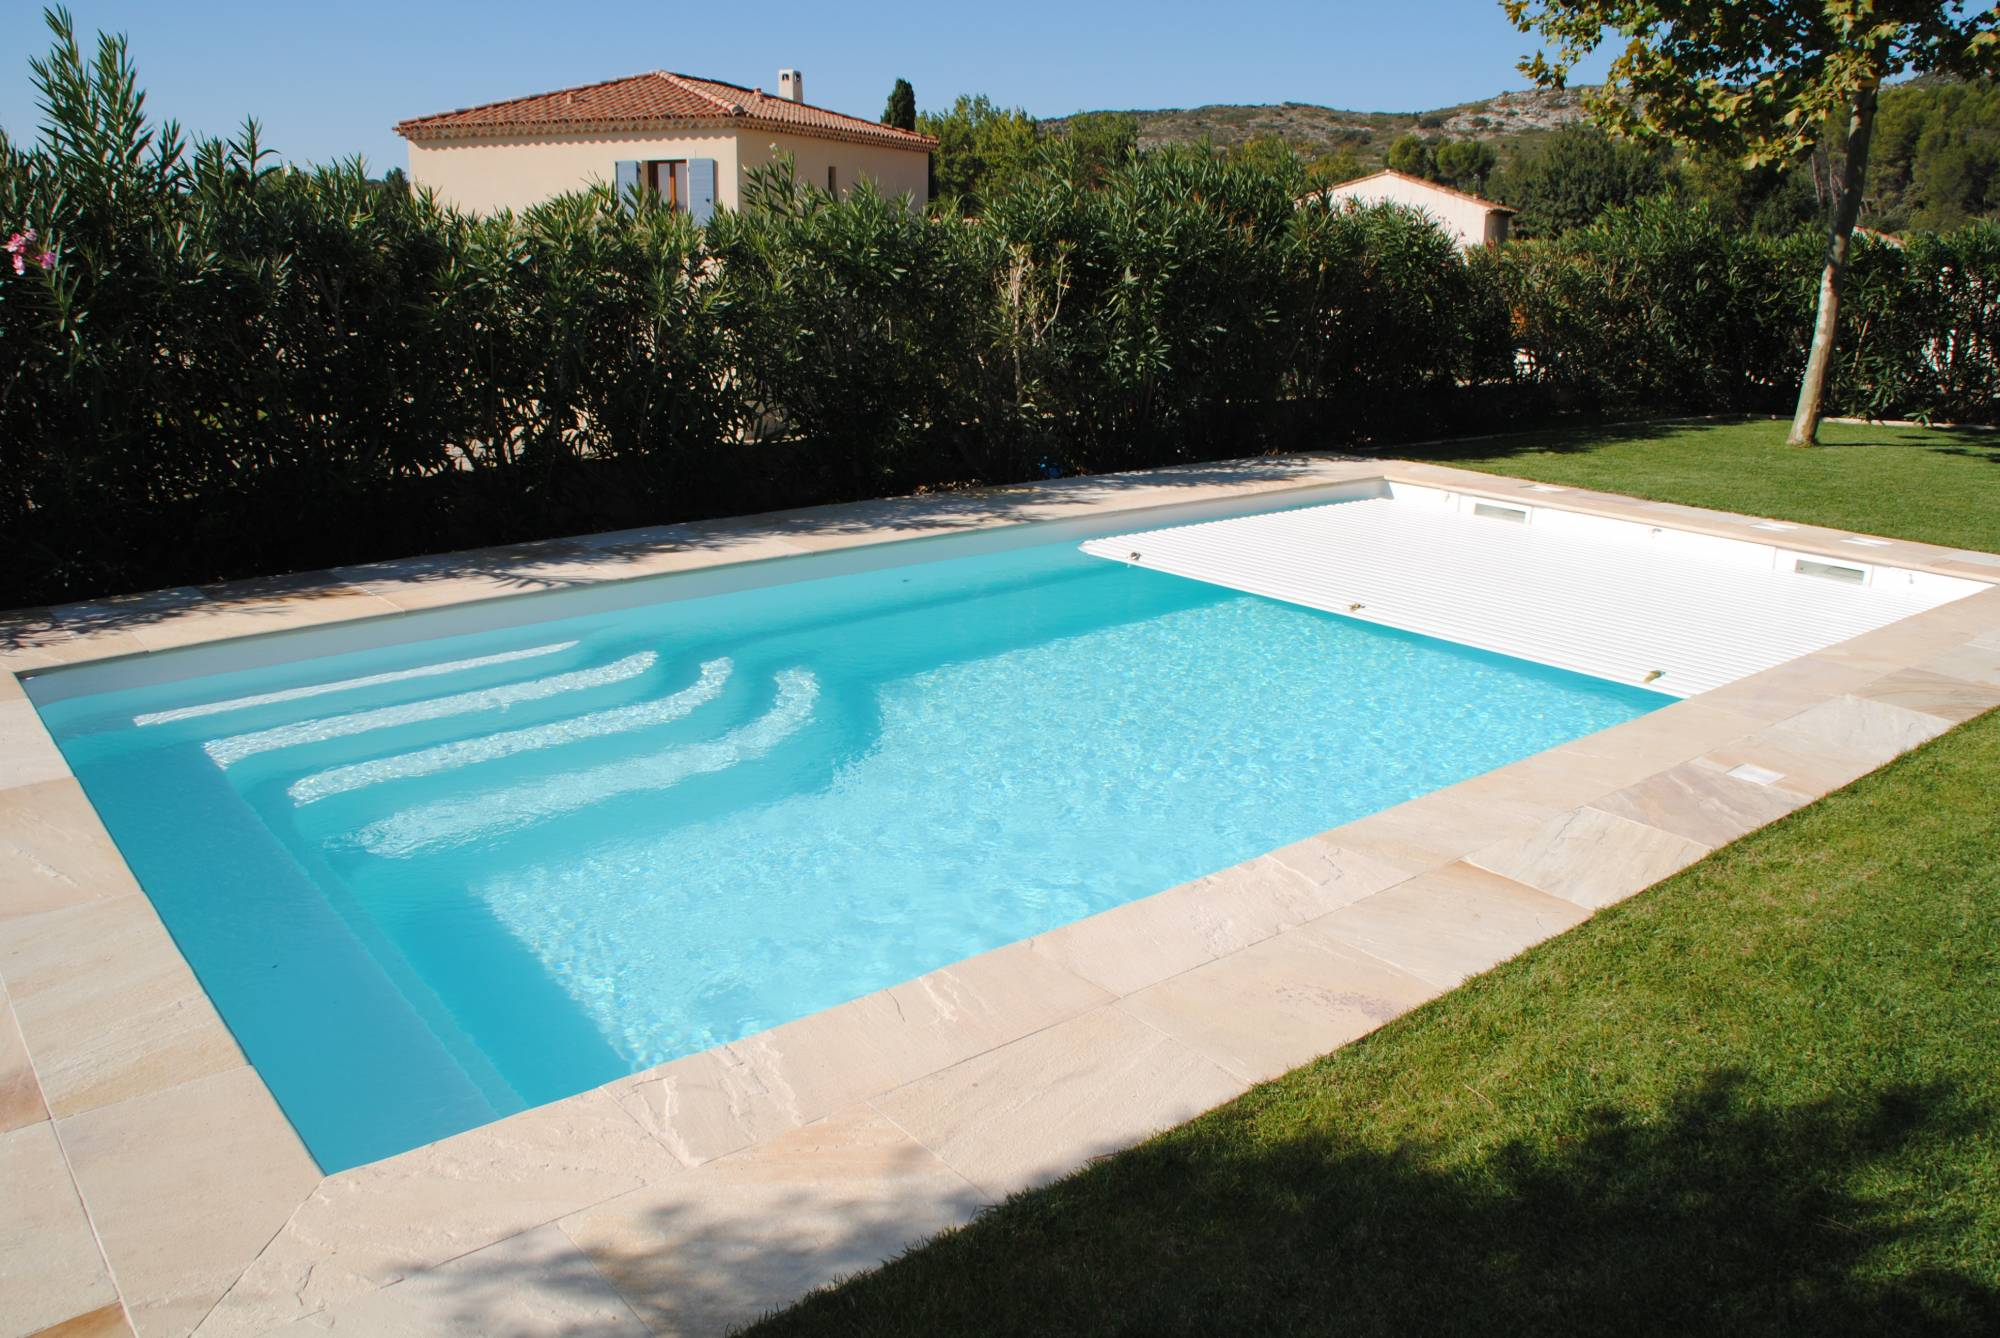 Piscine coque polyester volet immerg marseille france for Piscine monobloc polyester